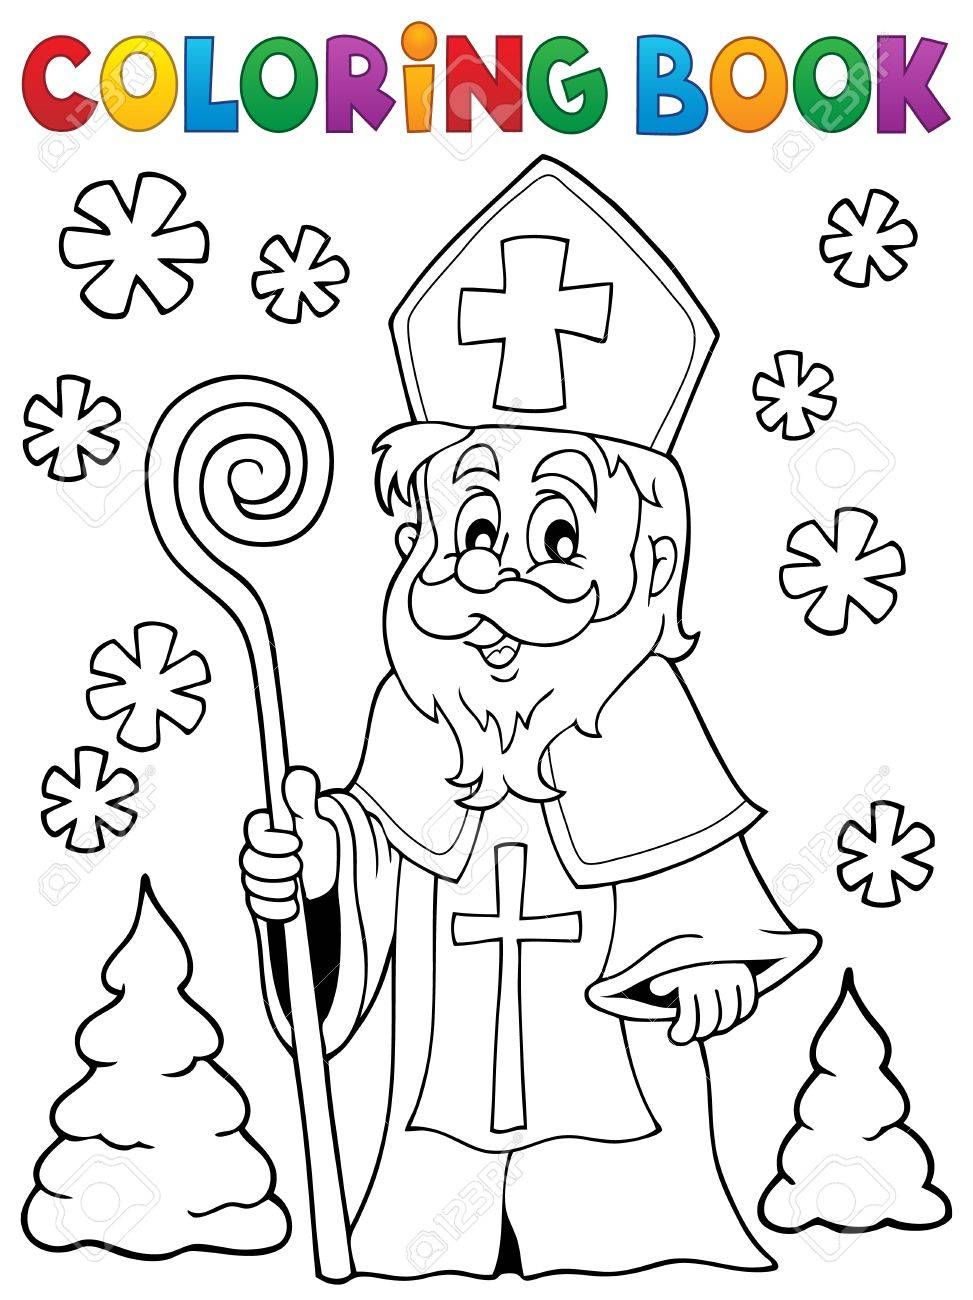 Coloring Book Saint Nicolas Theme 1 Royalty Free Cliparts Vectors And Stock Illustration Image 45606083